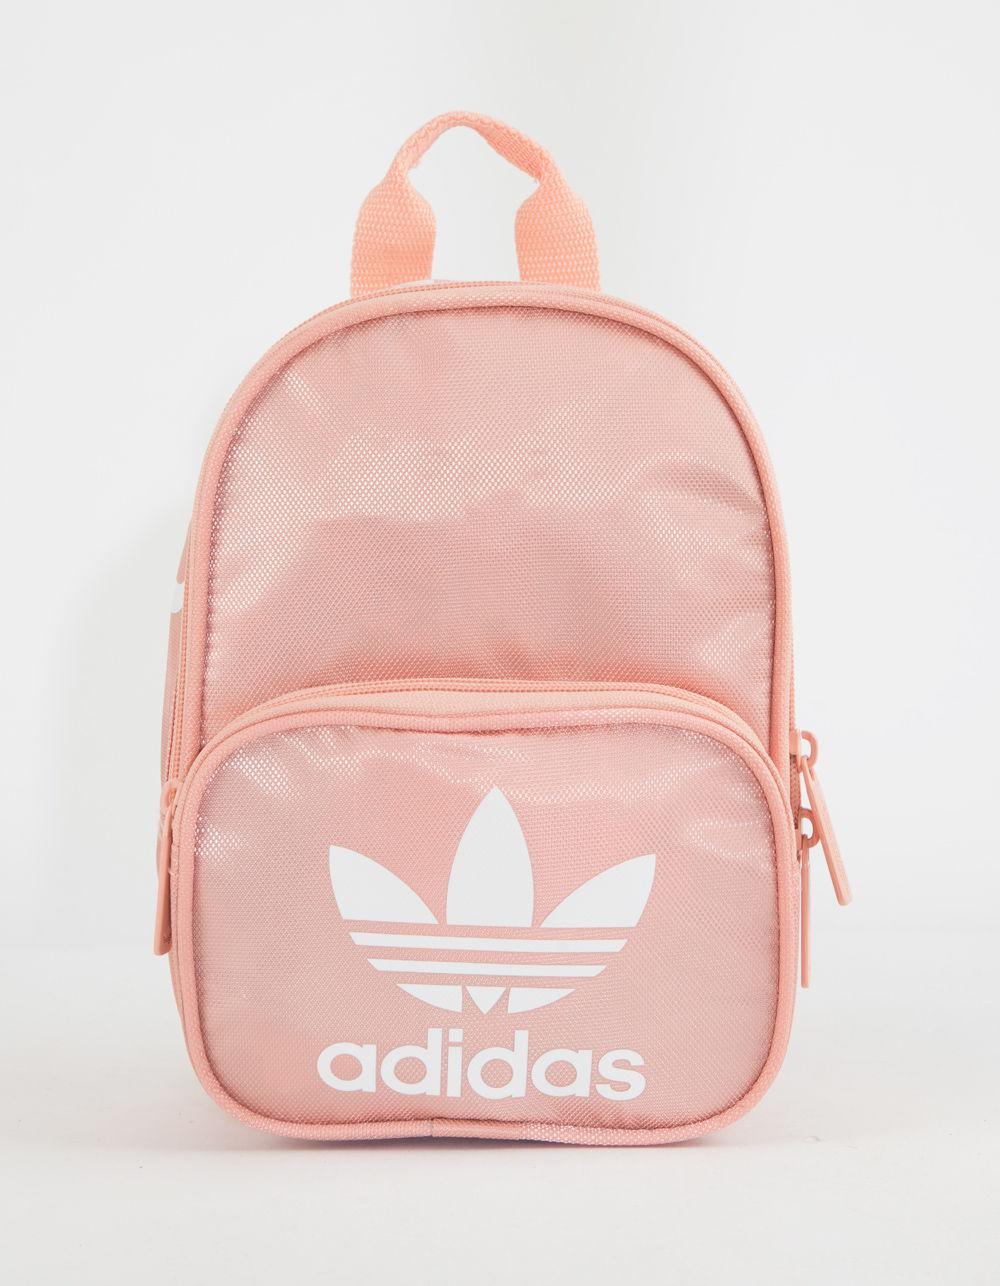 3d1baf8d74c Adidas - Originals Santiago Pink Mini Backpack - Lyst. View fullscreen